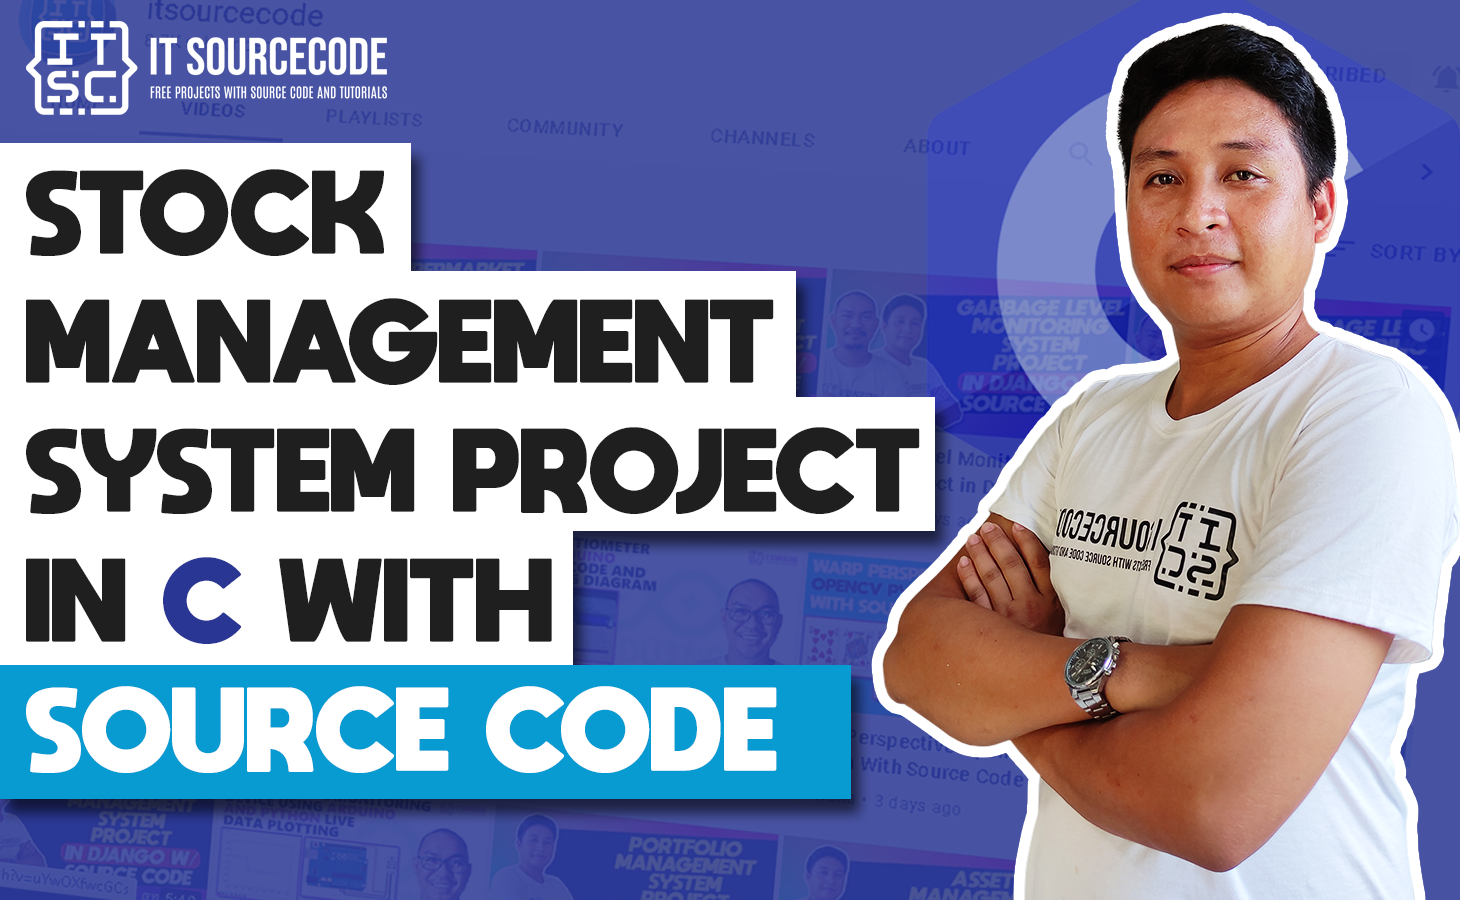 Stock Management System Project in C with Source Code